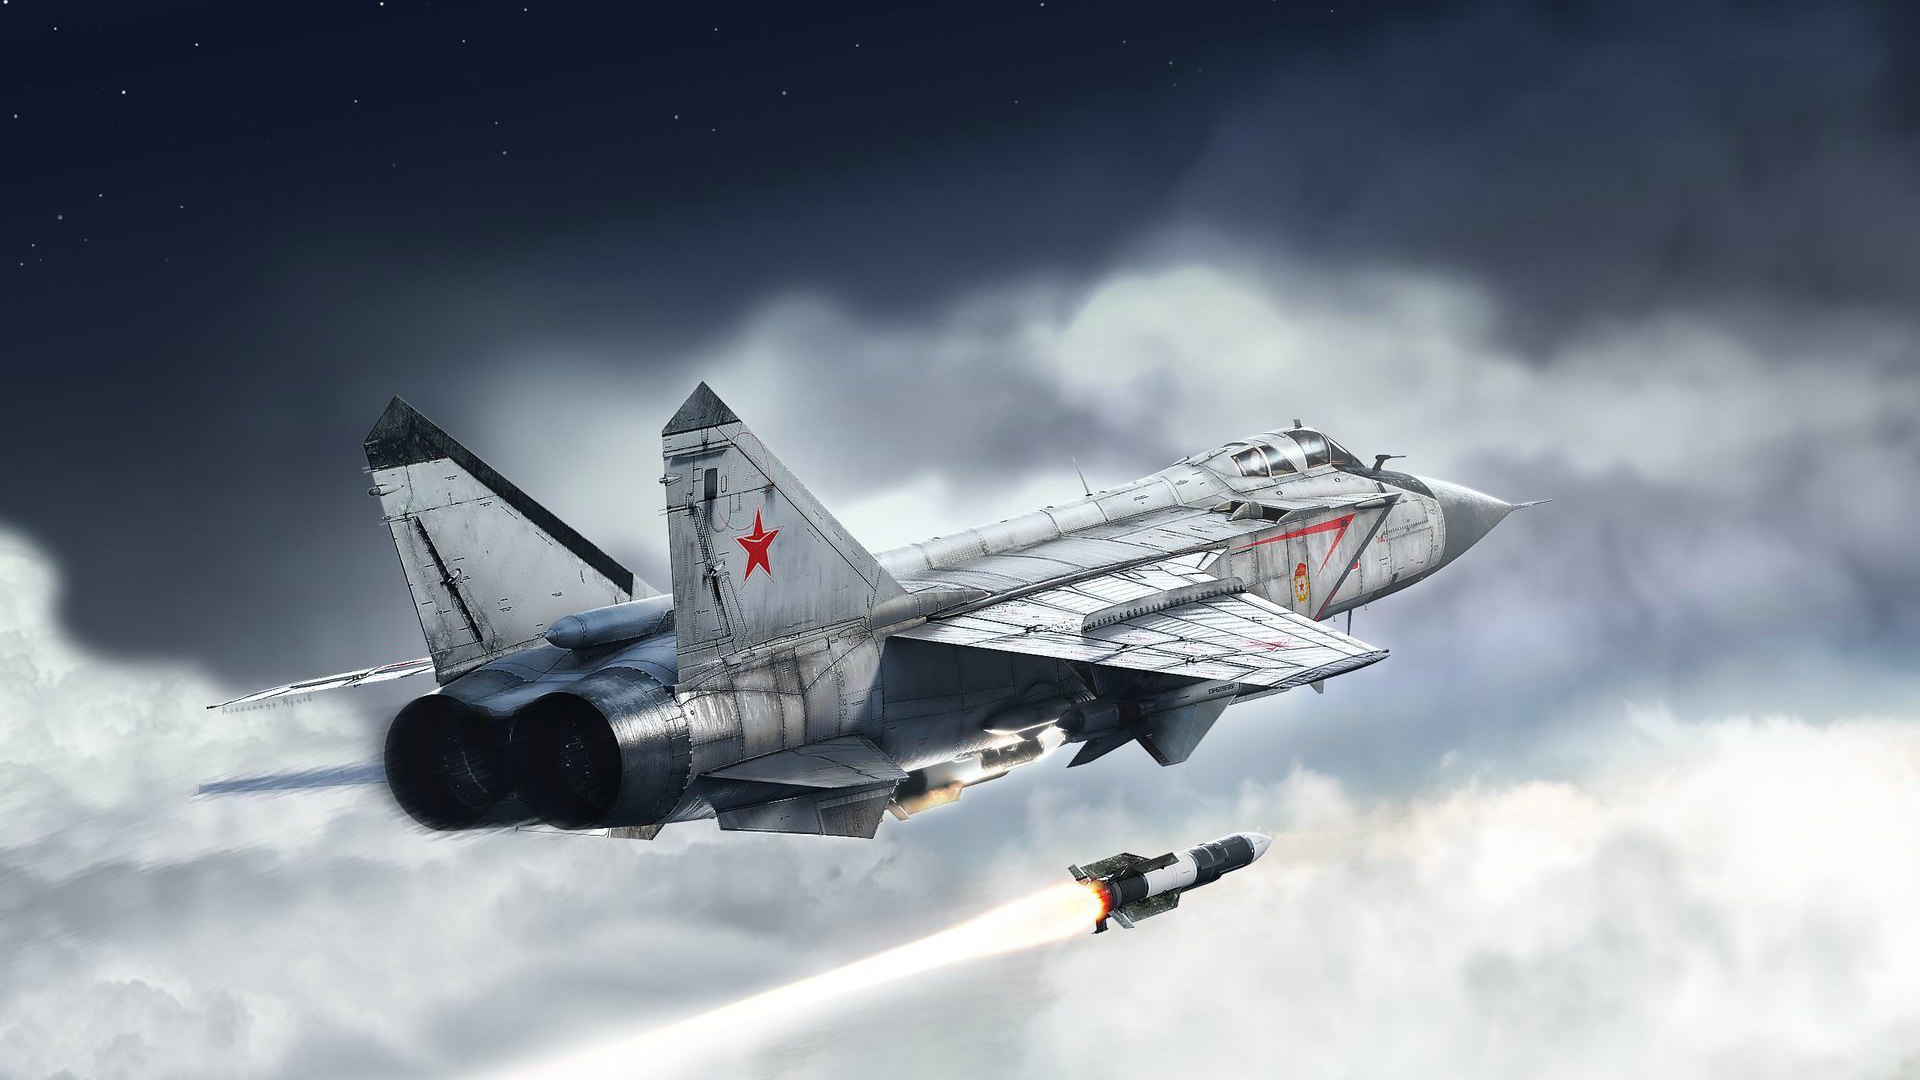 МиГ-31 Aviation_Military_aircraft_MiG-31_094352_.jpg